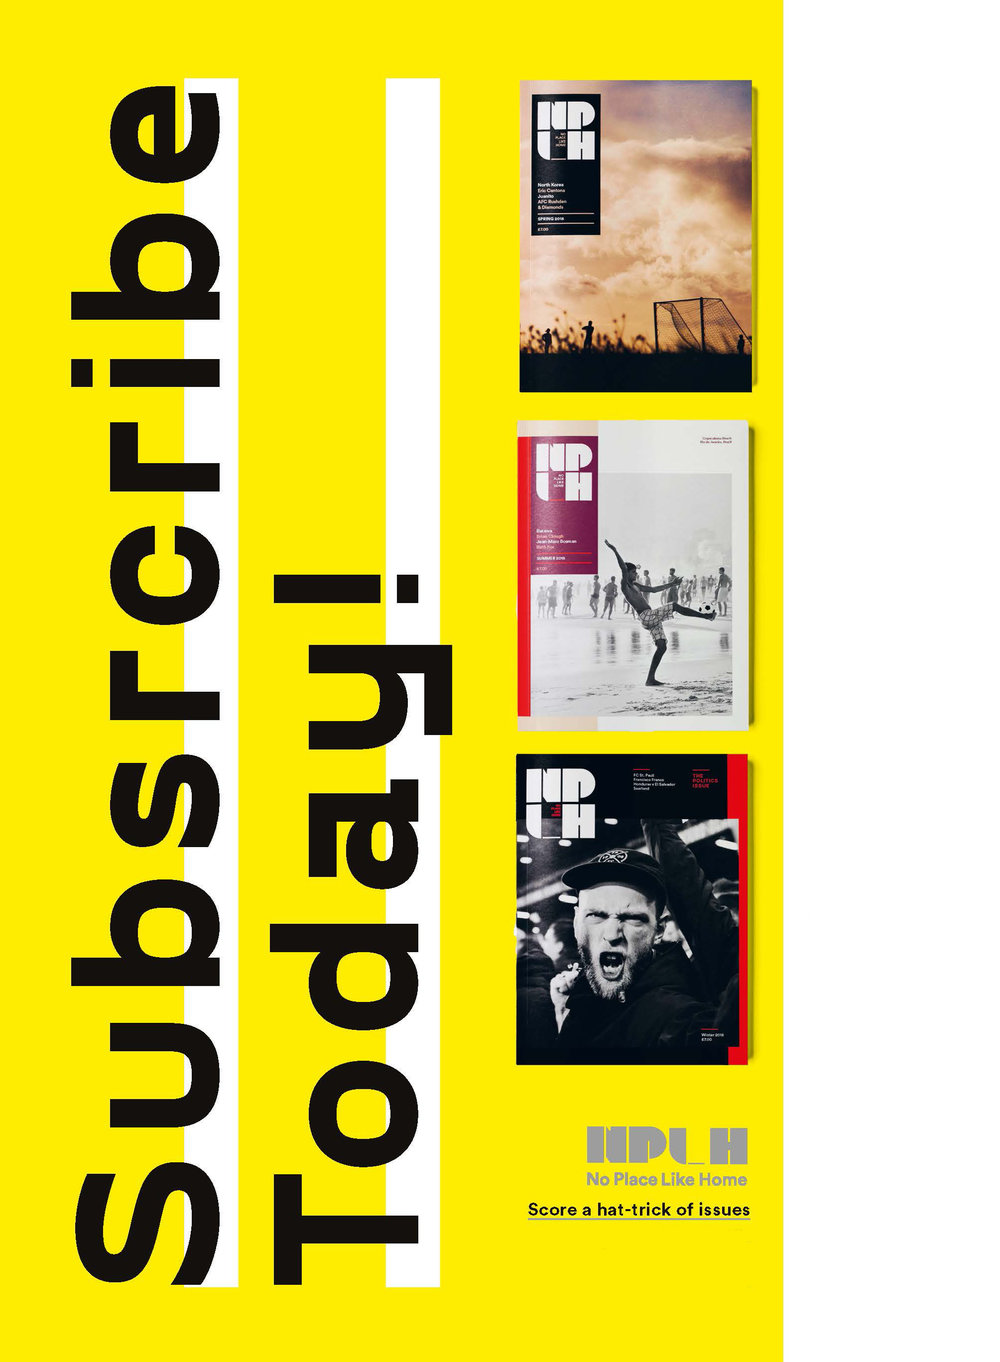 SUBSCRIBE TO THREE ISSUES OF NPLH